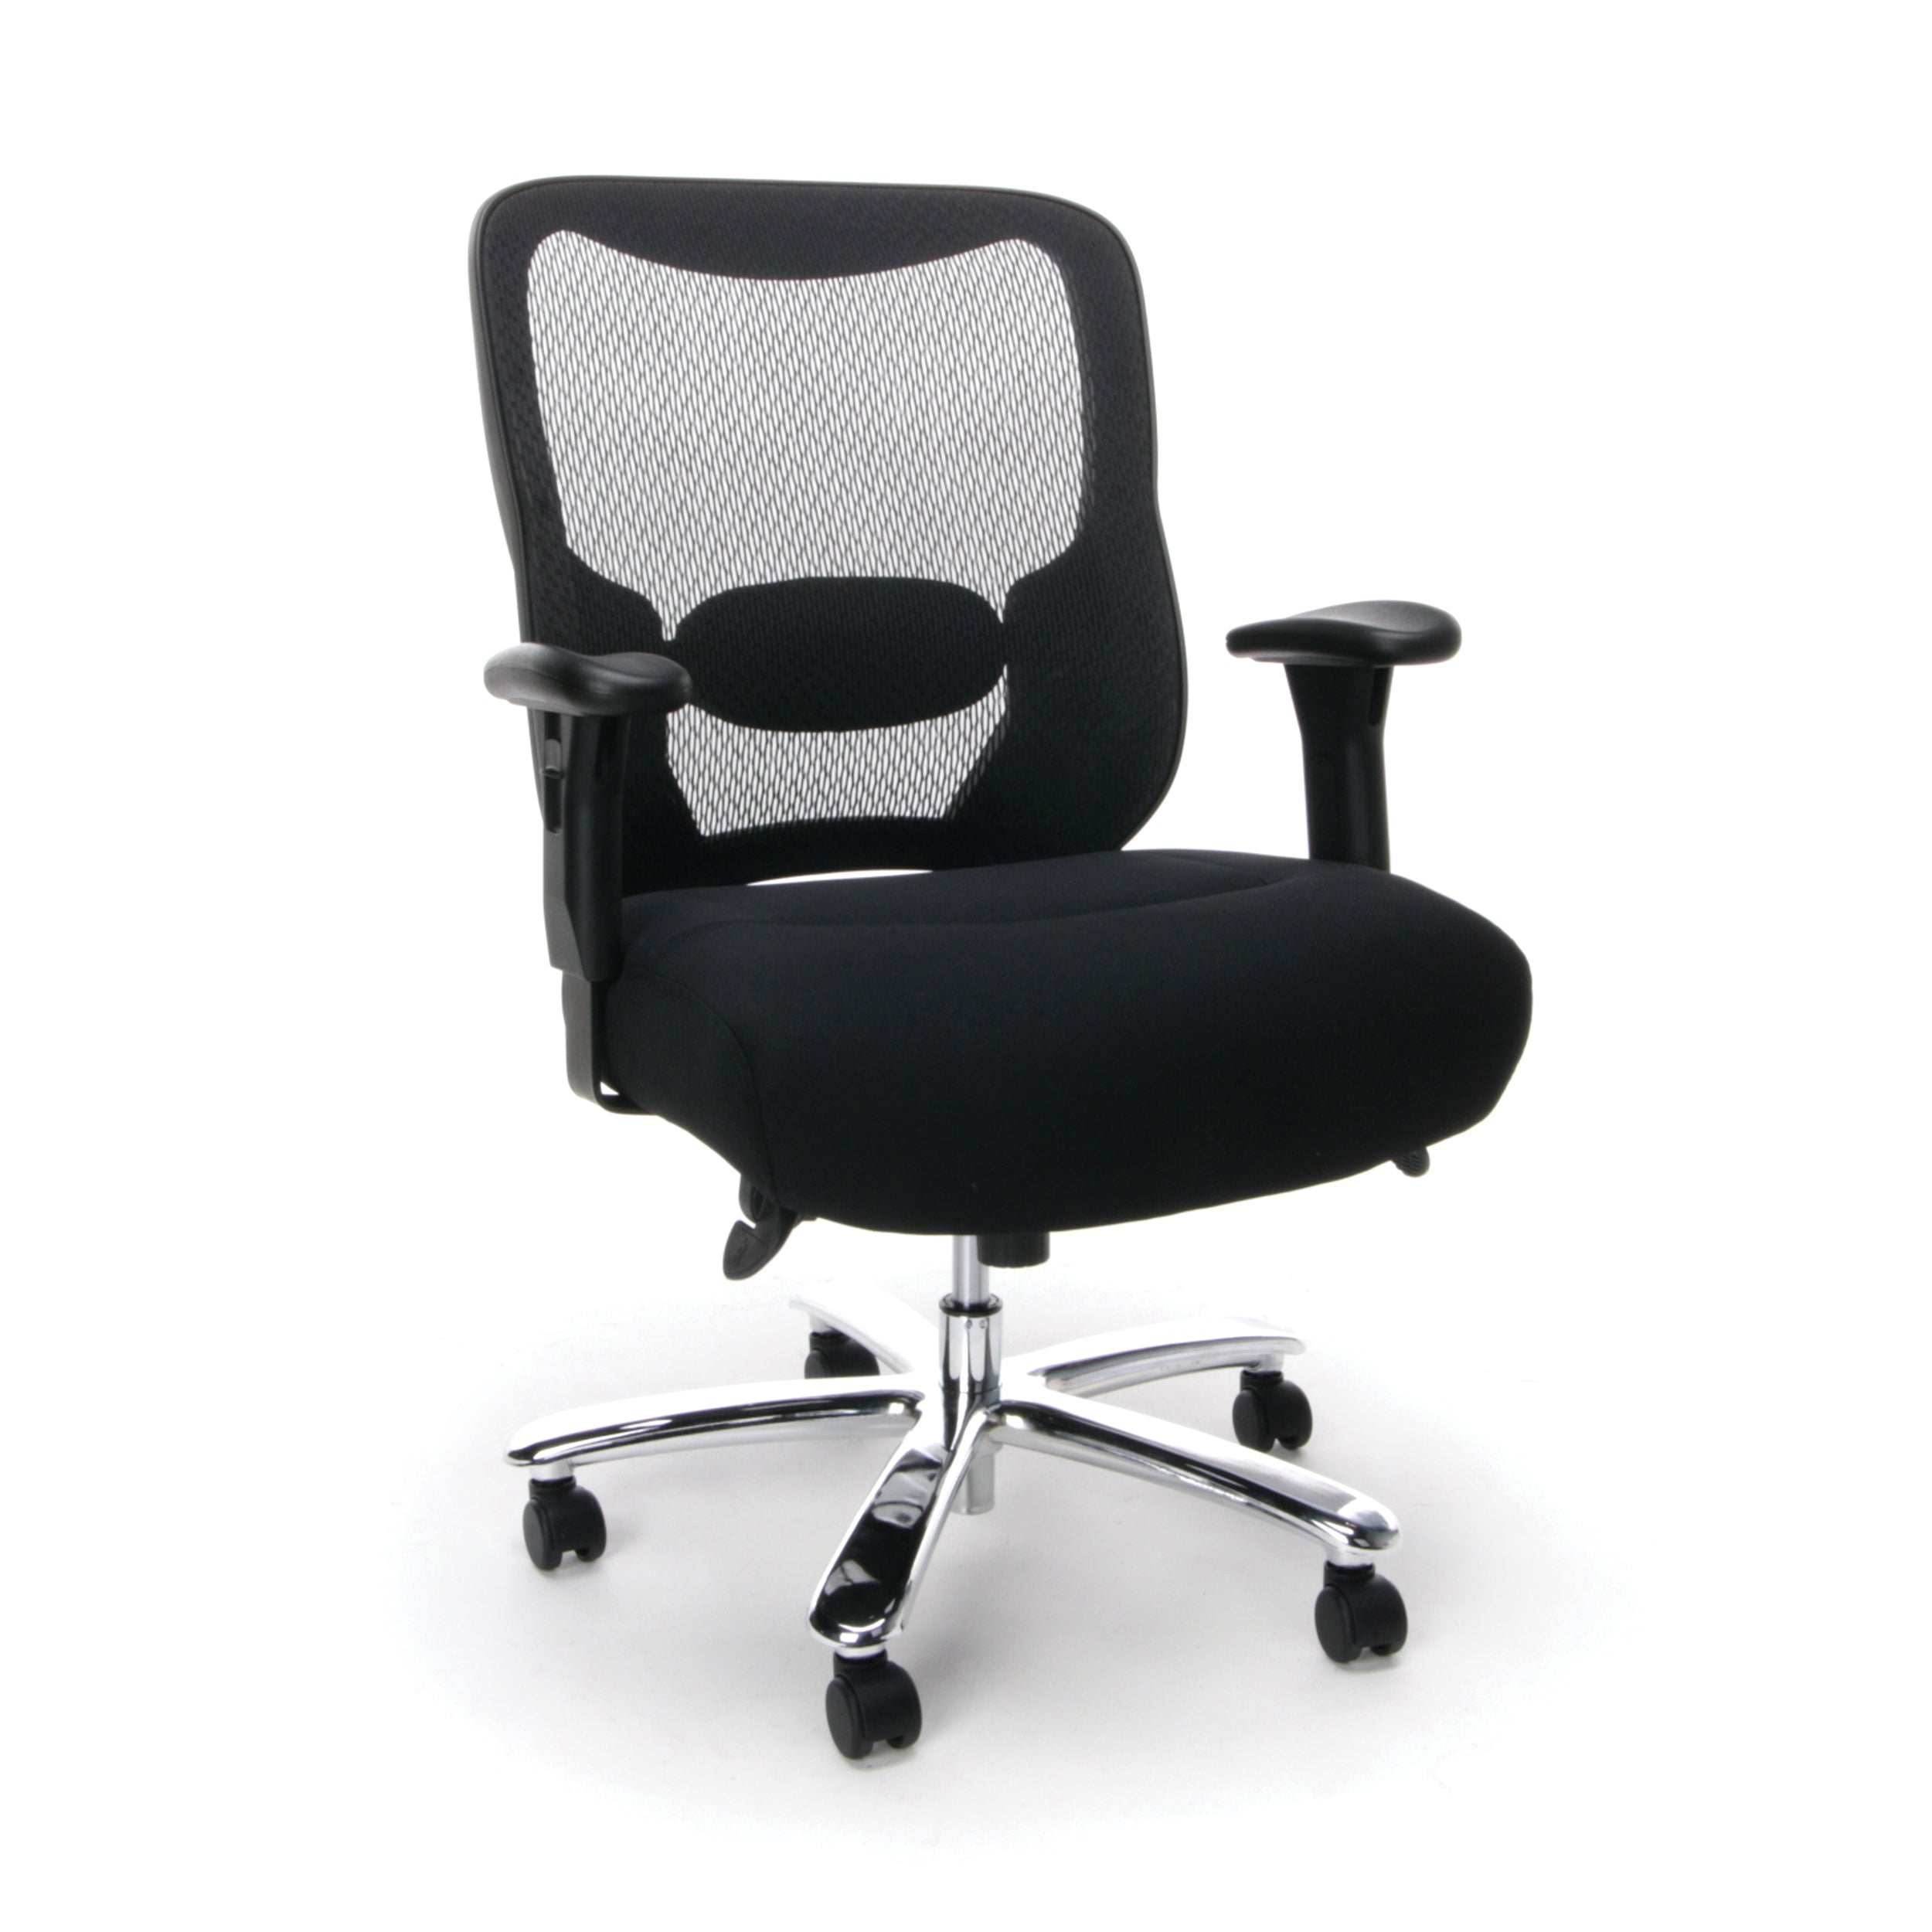 Model ESS-200 Essentials by OFM Big and Tall Mesh Back Task Chair